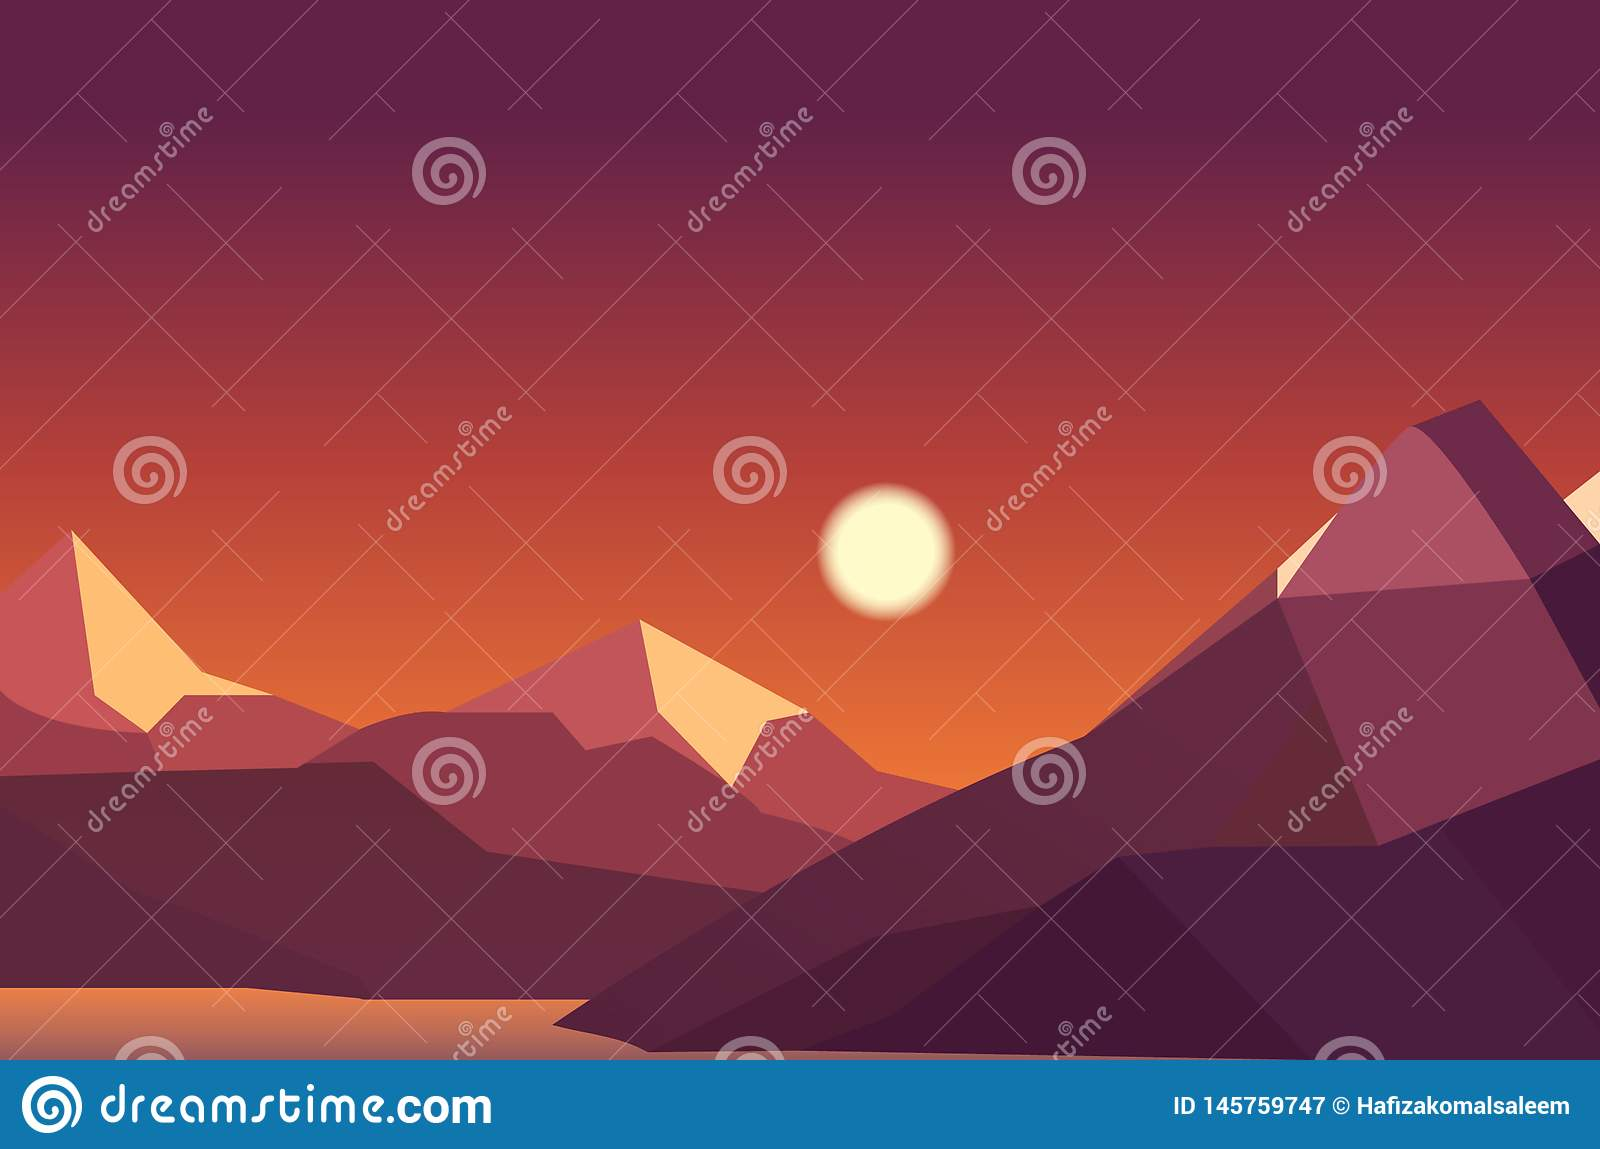 Creative Landscape Background With Mountain Stock Illustration Illustration Of Sunset Shadow 145759747,Architectural Design Plans